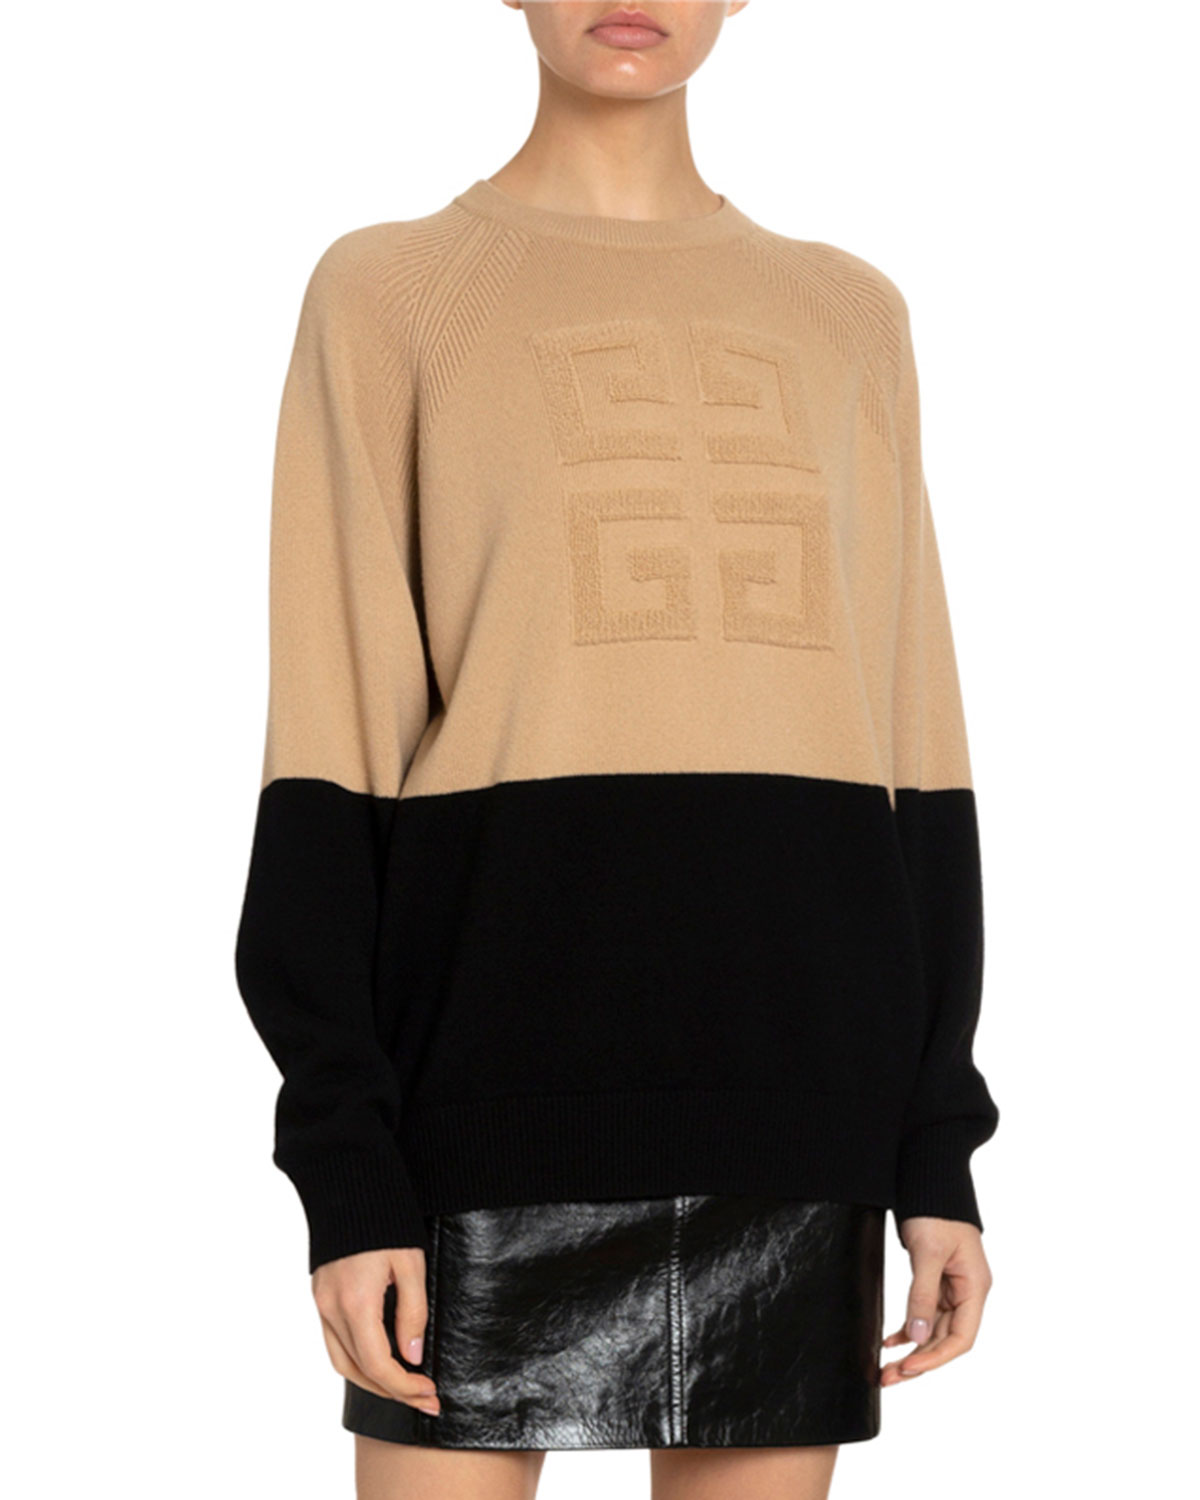 Givenchy Sweaters 4G CASHMERE LOGO-EMBROIDERED SWEATER